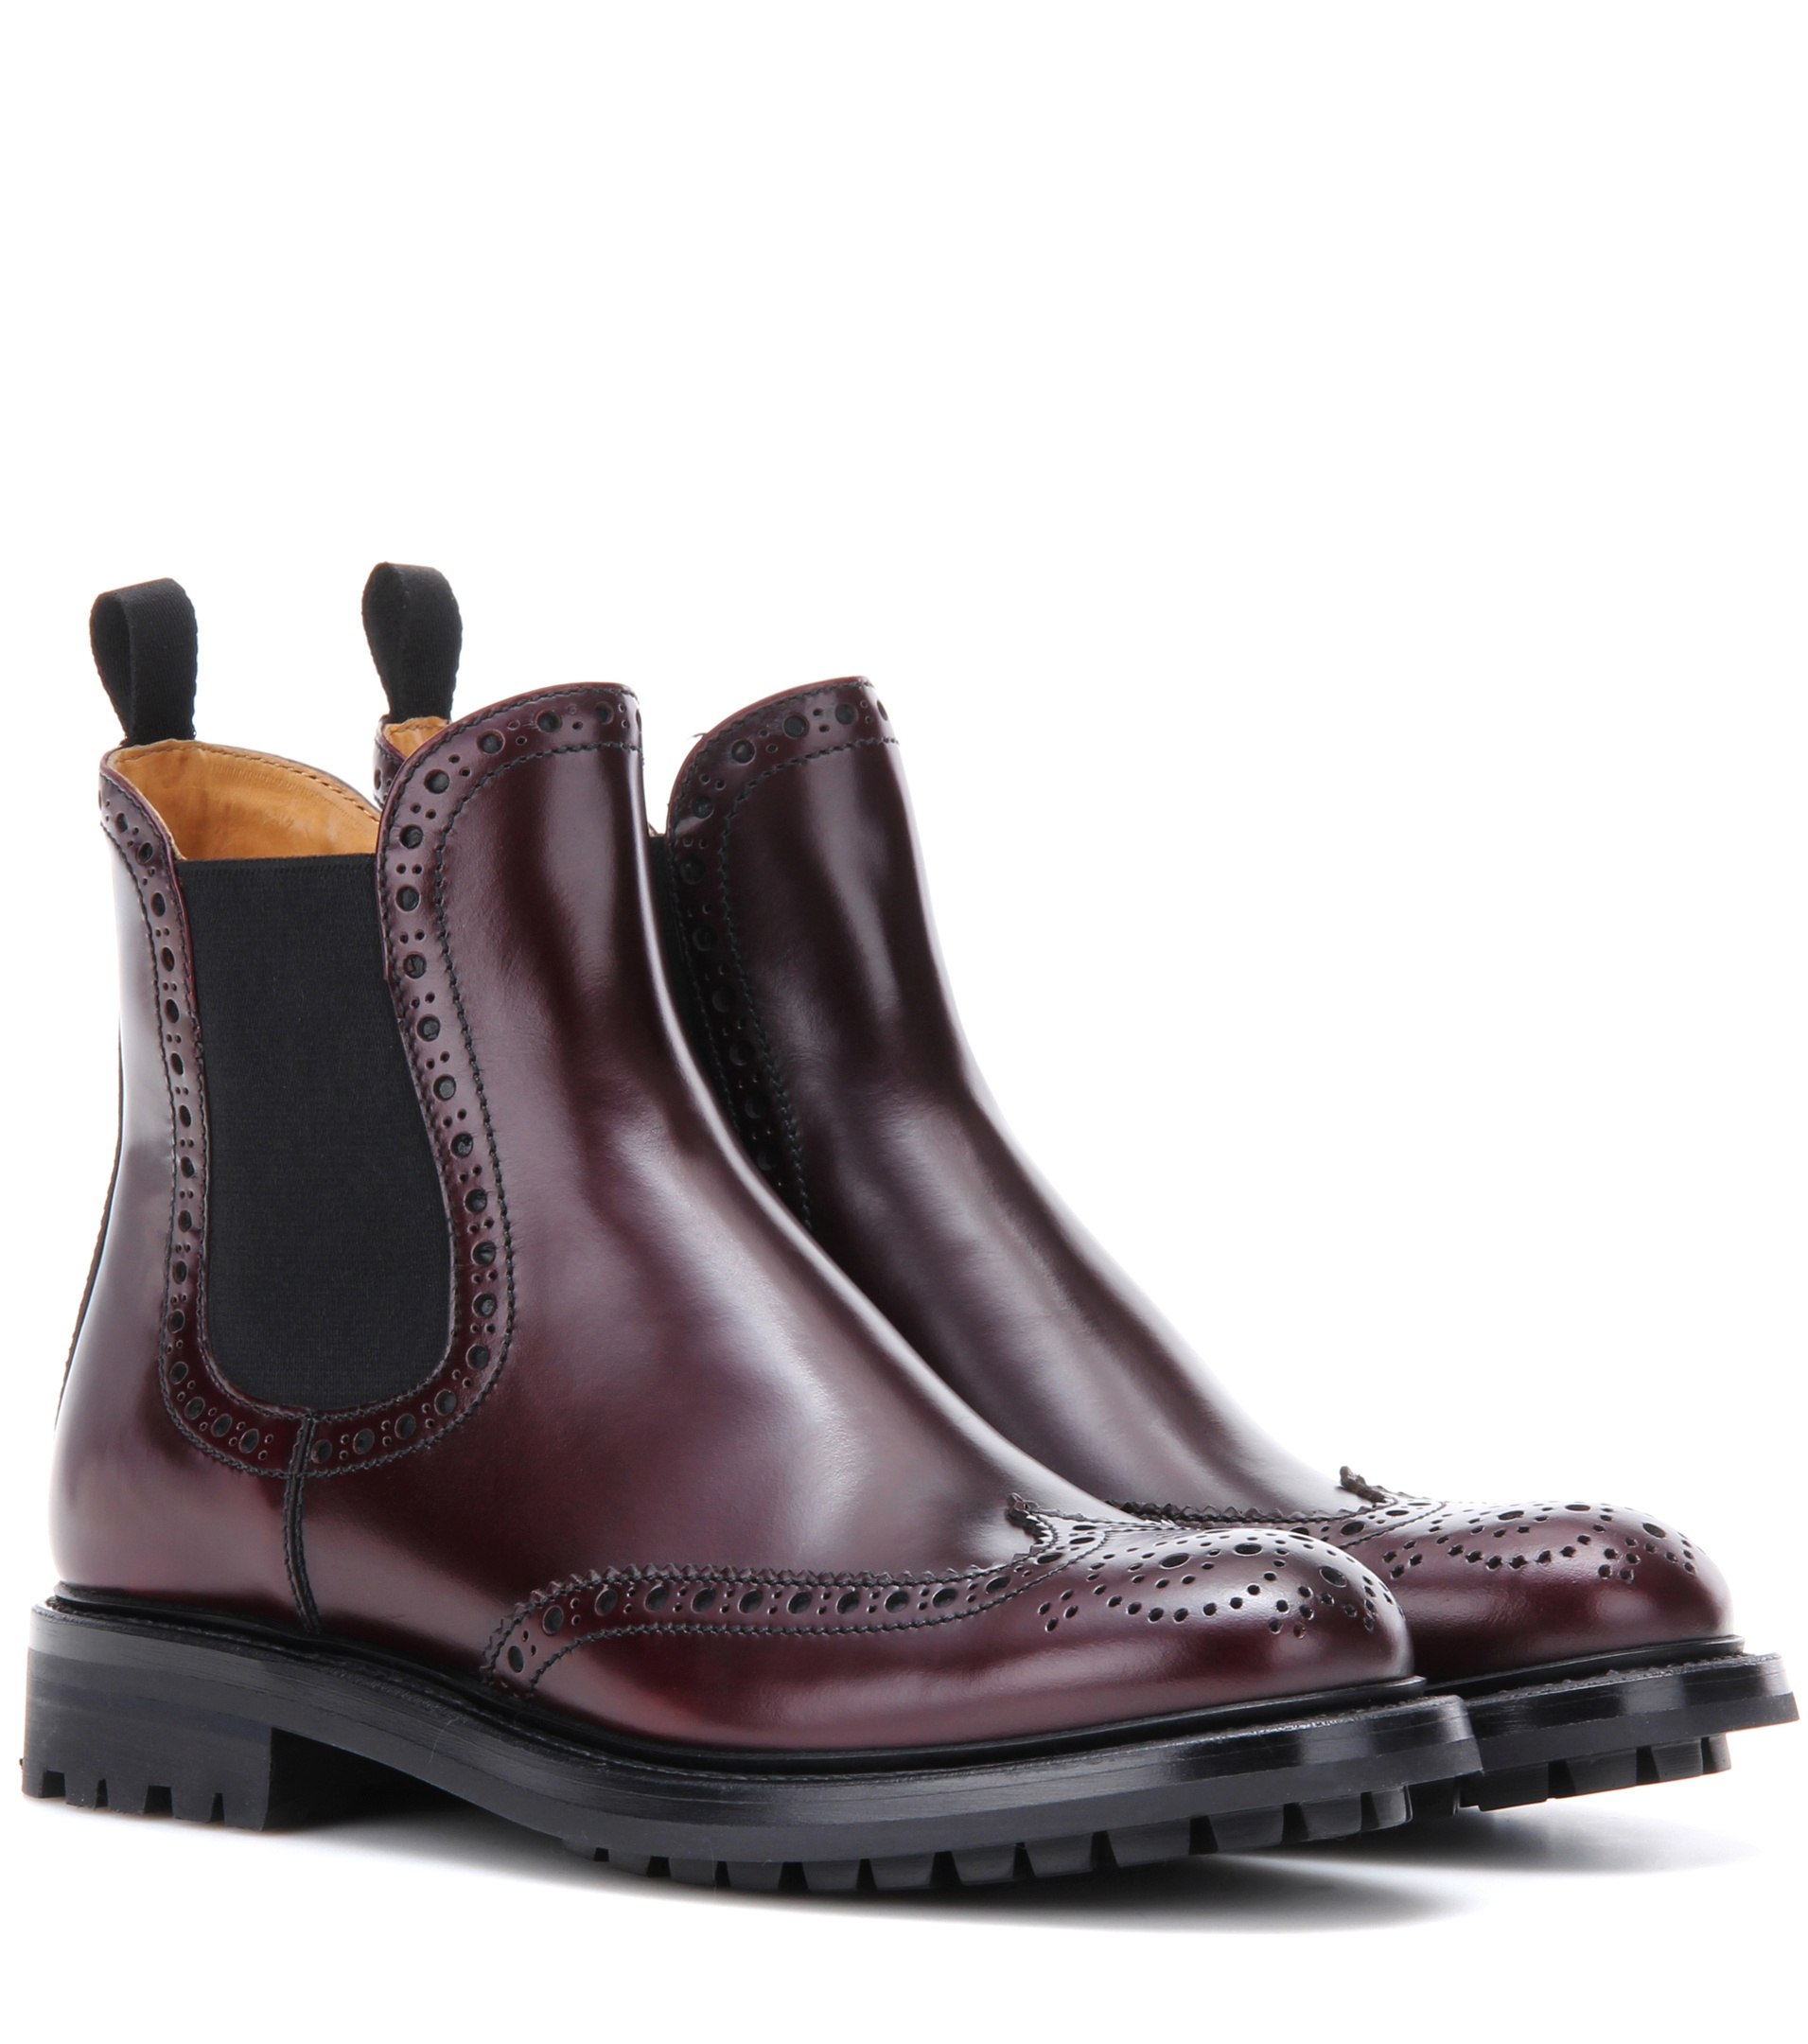 New The Kensington Flora Boot Features Dr Martens Signature Goodyear Welted Construction And Aircushioned Sole But In A Low Profile Version Which Offers A Refined Take On Classic Dr Martens Styles Based On A Traditional Chelsea Boot